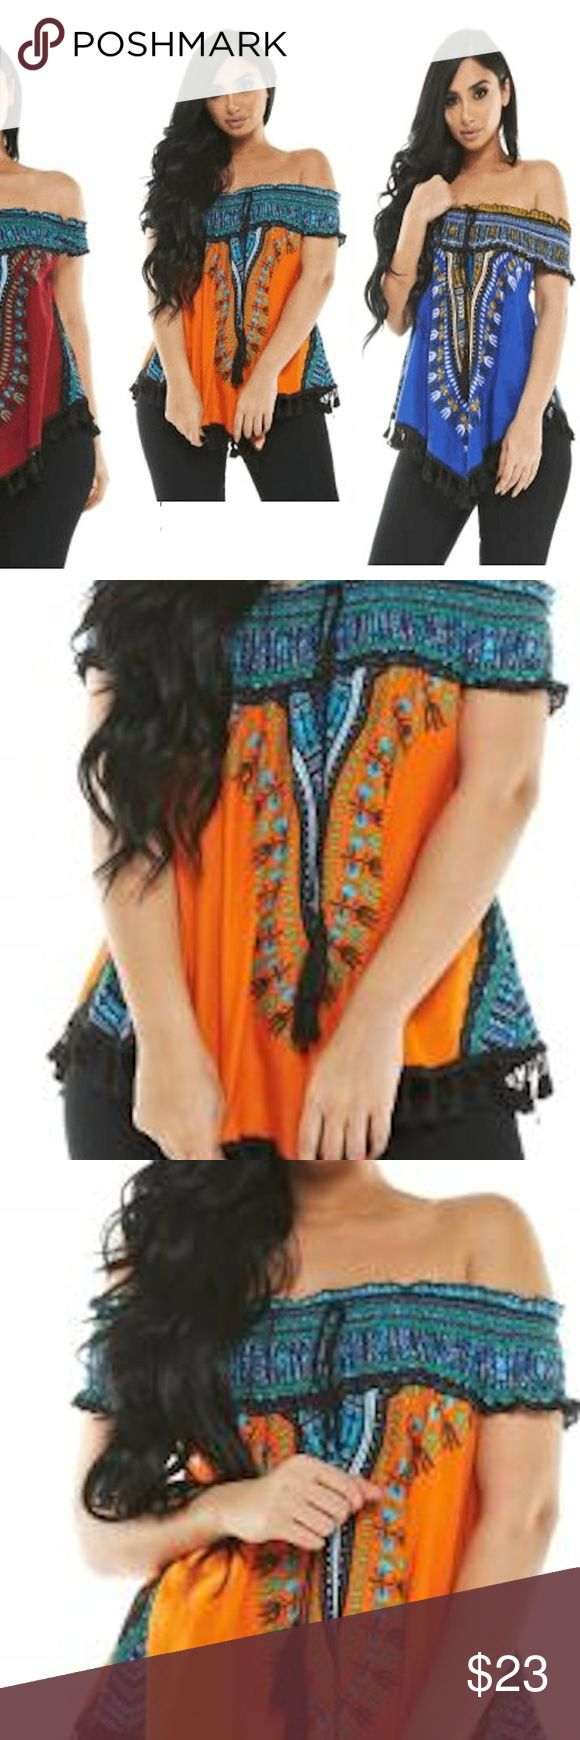 """NEW DASHIKI FRINGE TOP BLOUSE SHIRT ORANGE ORANGE SUPER CUTE AND TRENDY DASHIKI TOP. THIS LISTING IS FOR THE BLACK ONE; IF WANT THE ORANGE ONE, CHECK OTHER LISTINGS. SEXY OFF THE SHOULDER TOP WITH SLIMMING V HEM LINE. GORGEOUS COLORS. THESE CAN BE WORN ON OR OFF SHOULDER AND ARE A LOOSE FIT SO EACH SIZE COULD ALSO FIT ONE SIZE UP. MEASURES APPROX. 25"""" WITHOUT FRINGE FROM CENTER OF NECK TO CENTER OF BOTTOM.  95% POLY 5% SPANDEX LOOSE, FLOWY FIT I DO NOT INFLATE MY PRICES SO DON'T HAVE ALOT OF…"""